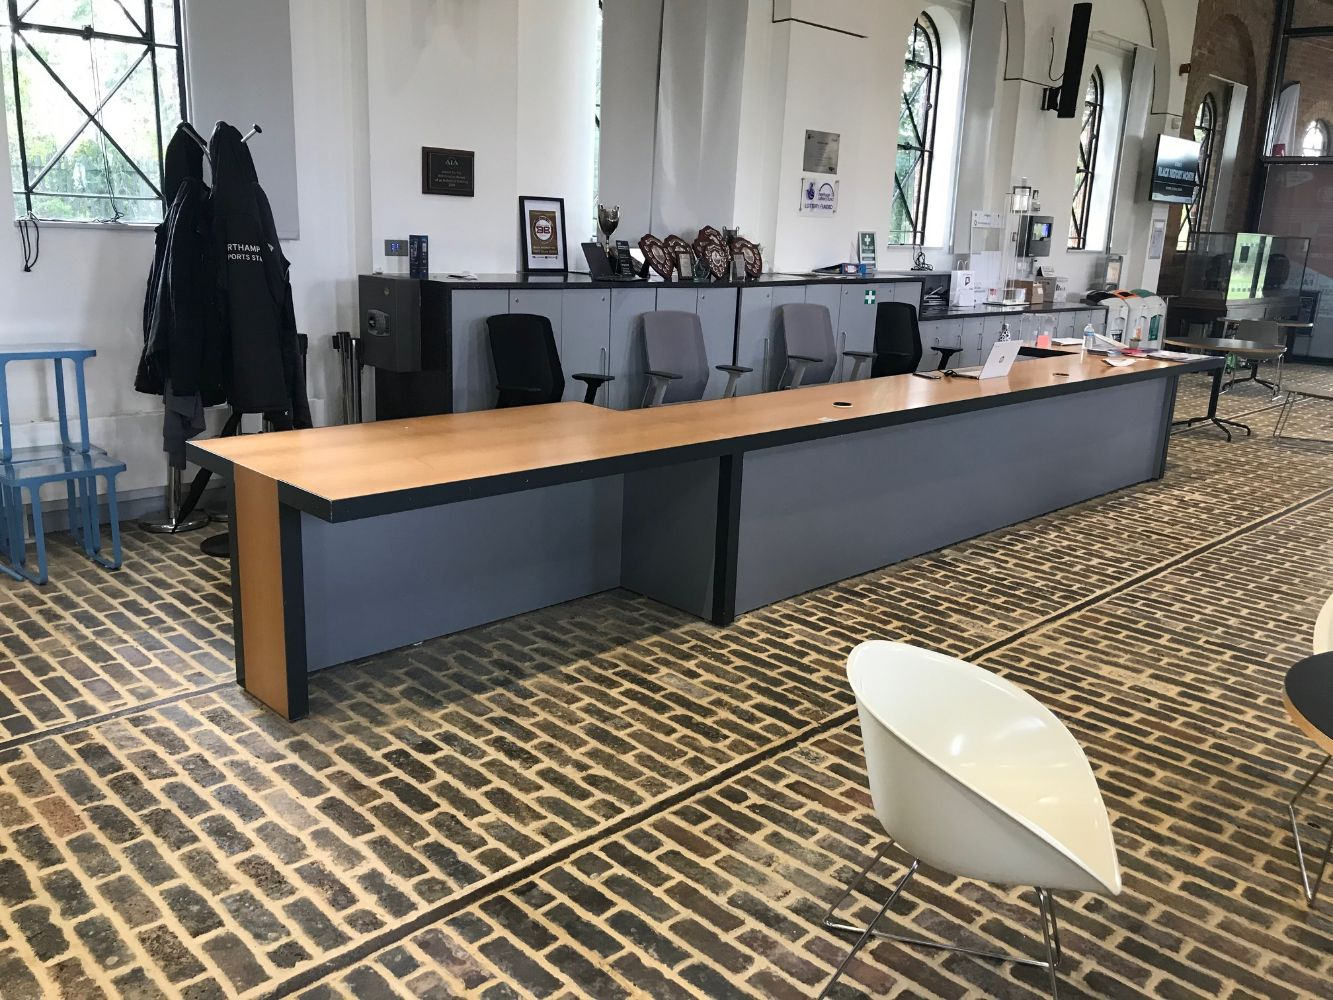 Online Auction Of Bespoke Oak Veneer Reception Desk 6.79m Long - Location: The University of Northampton - Collection Only By Appointment